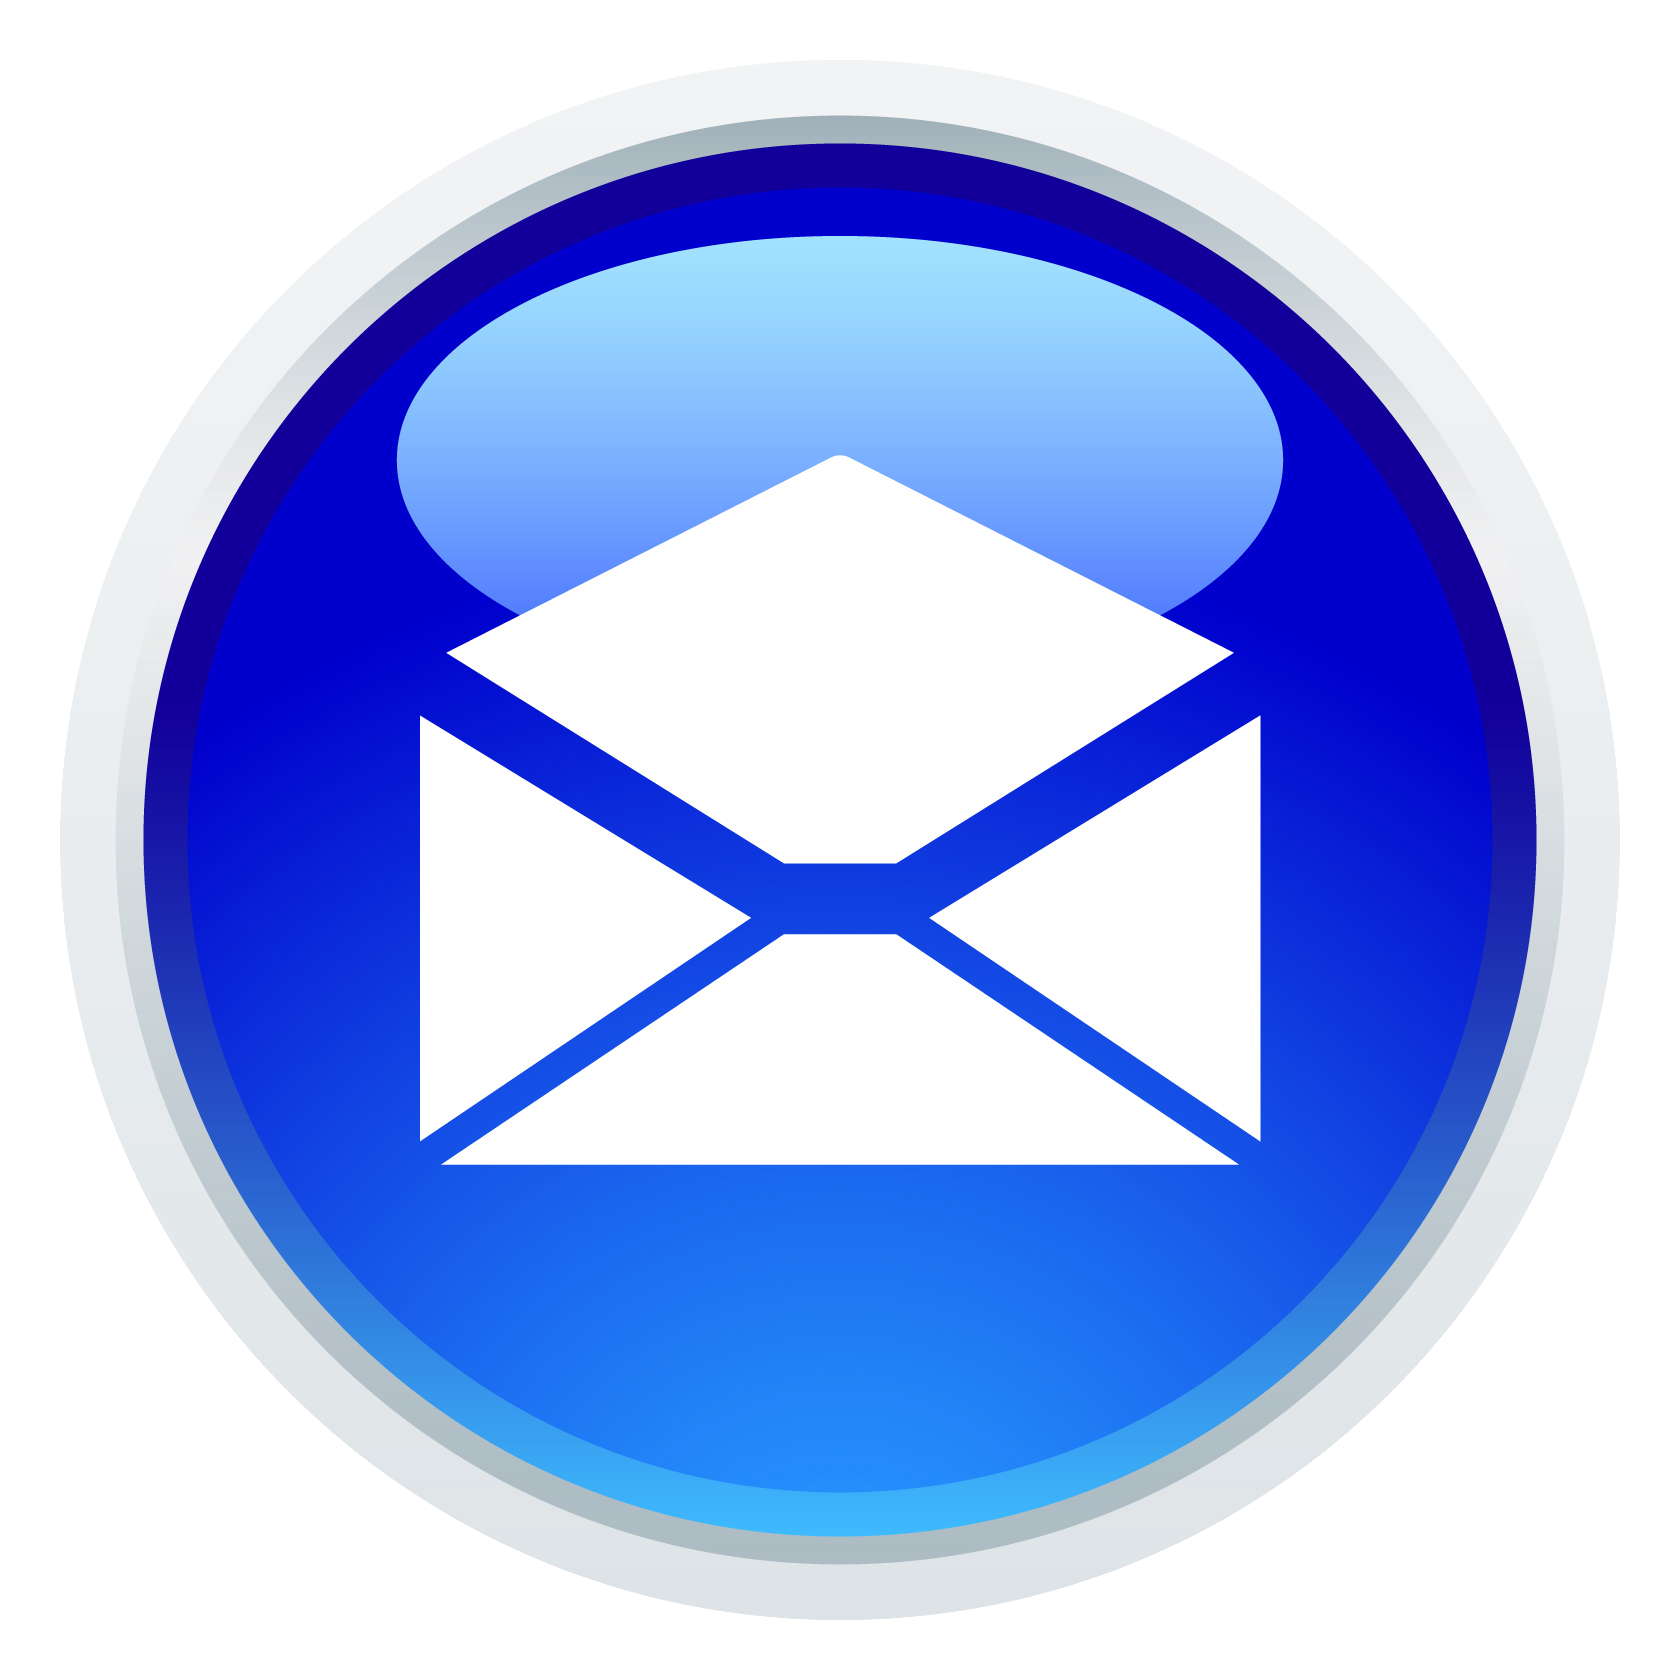 Logo email png. Csdfs pinterest emaillogopngpng